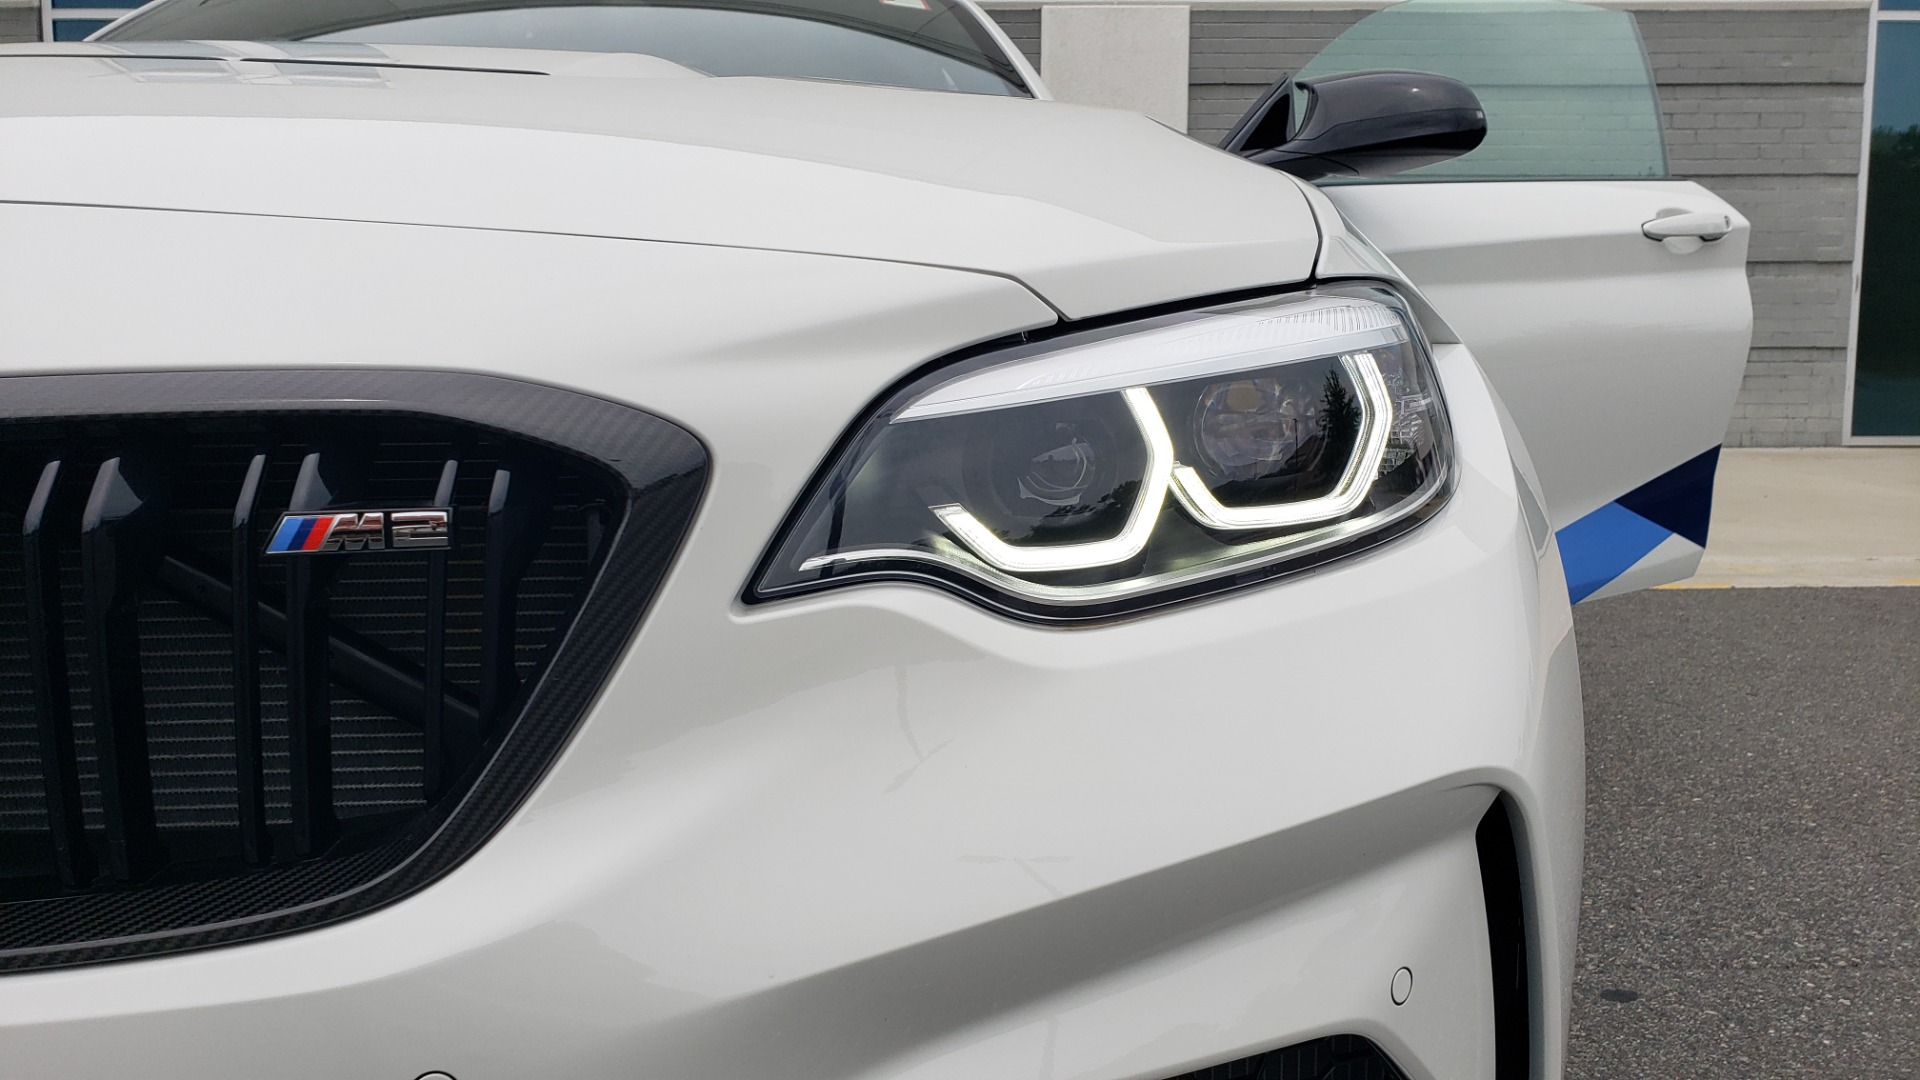 Used 2020 BMW M2 CS COMPETITION 405HP / COUPE / MANUAL / NAV / H/K SOUND / REARVIEW for sale $105,995 at Formula Imports in Charlotte NC 28227 27